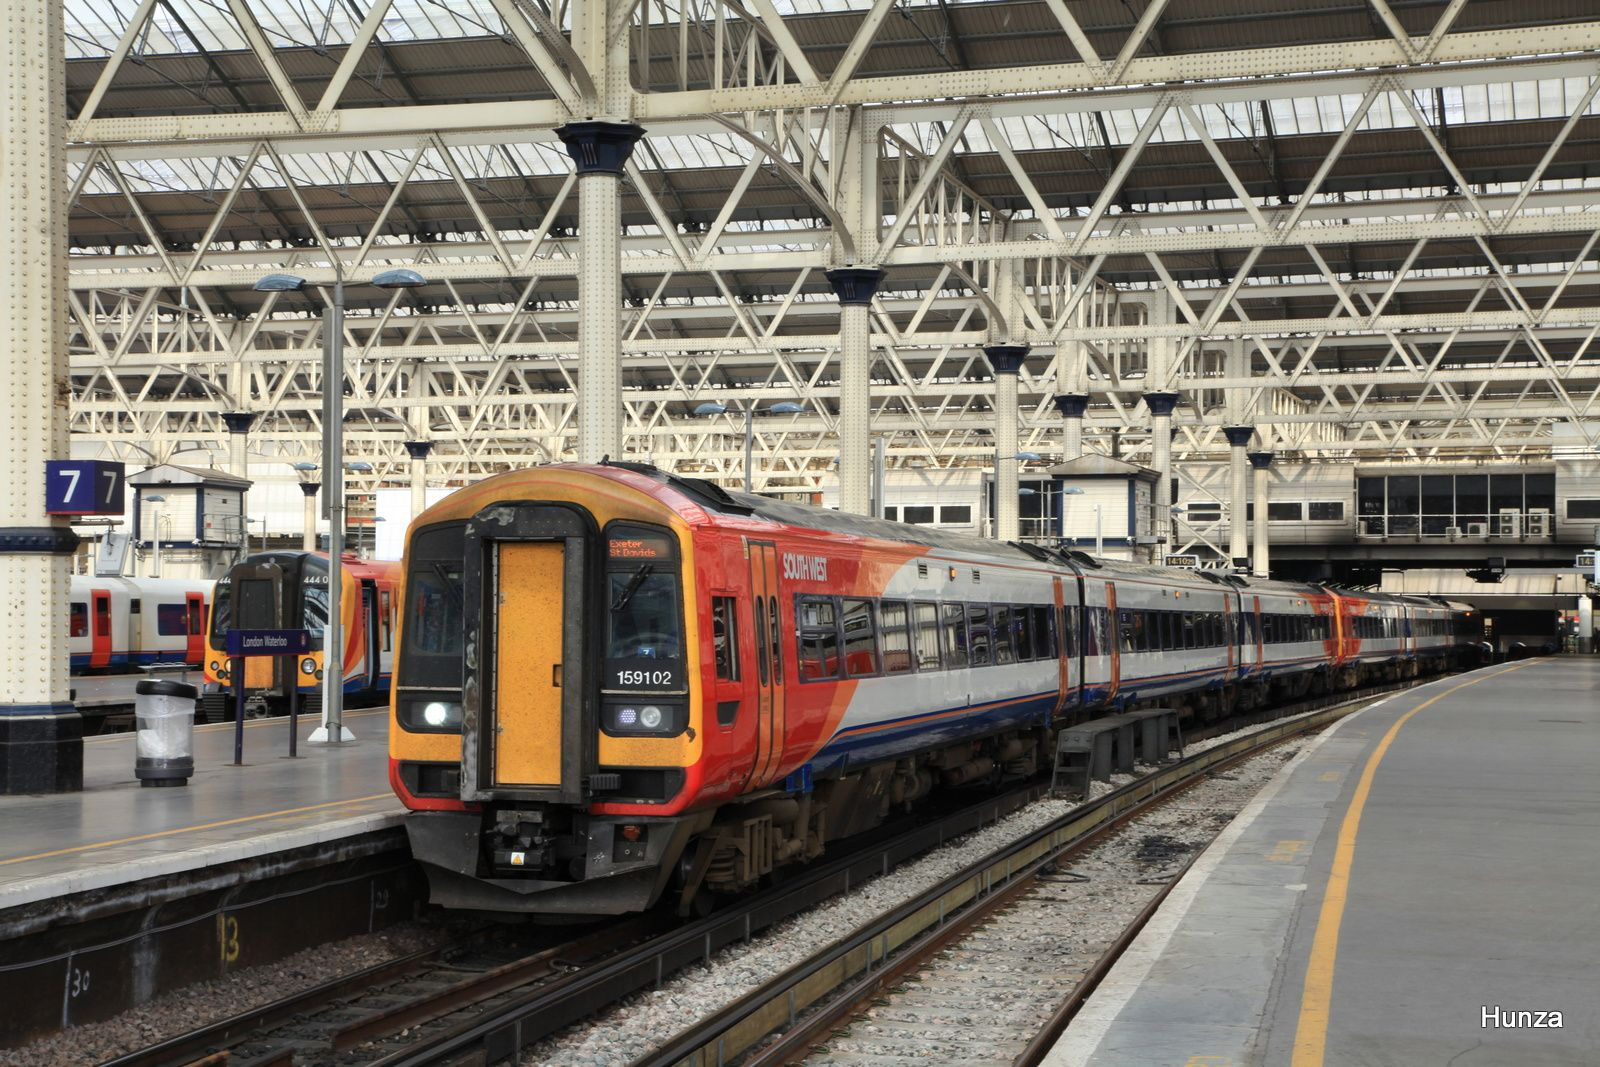 Waterloo station : class 159/1 n°159 102 à destination d'Exeter St Davids (31 juillet 2014)